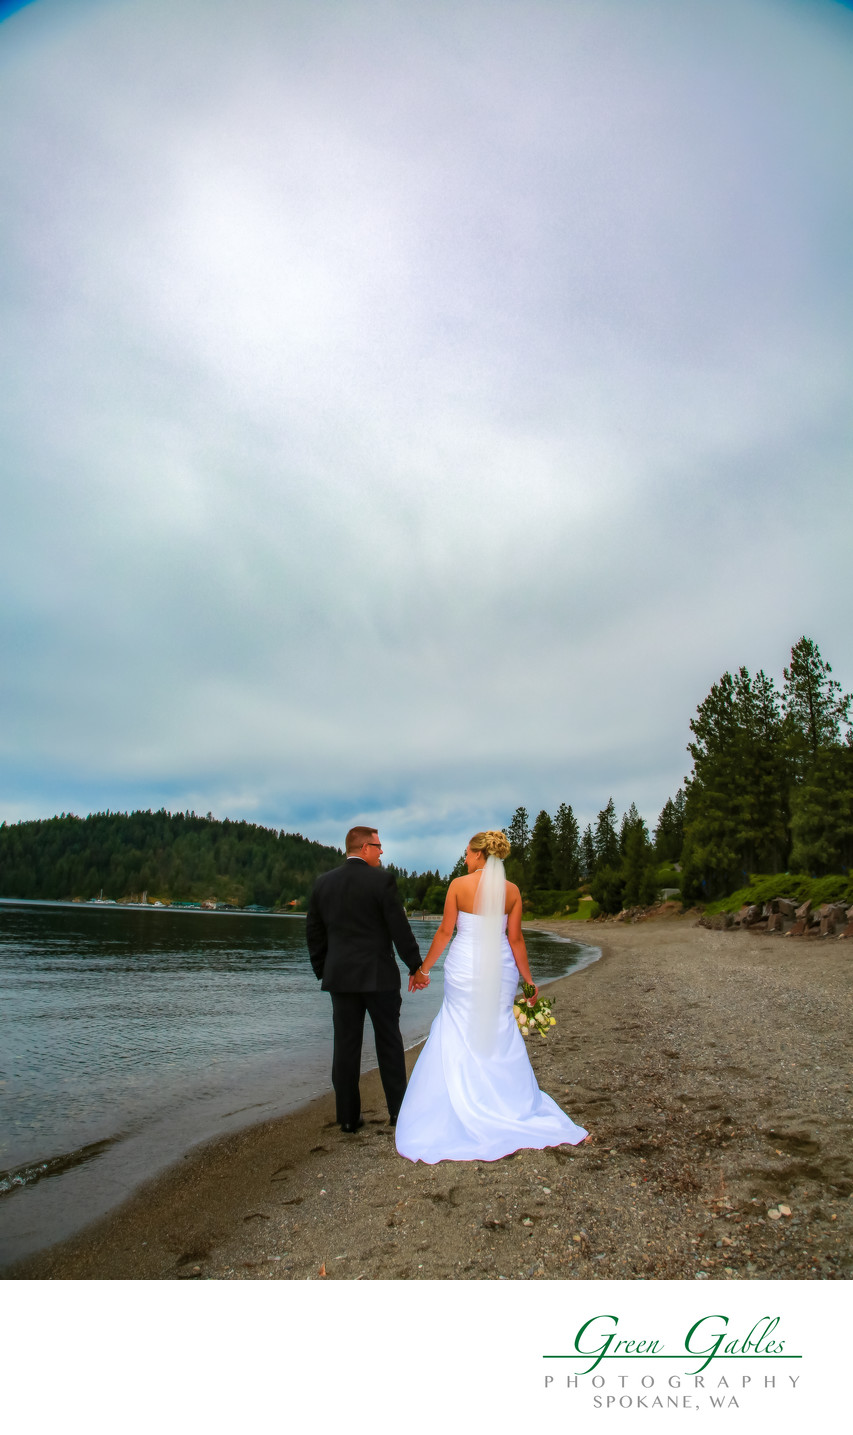 Coeur d' Alene Resort, destination wedding, beach